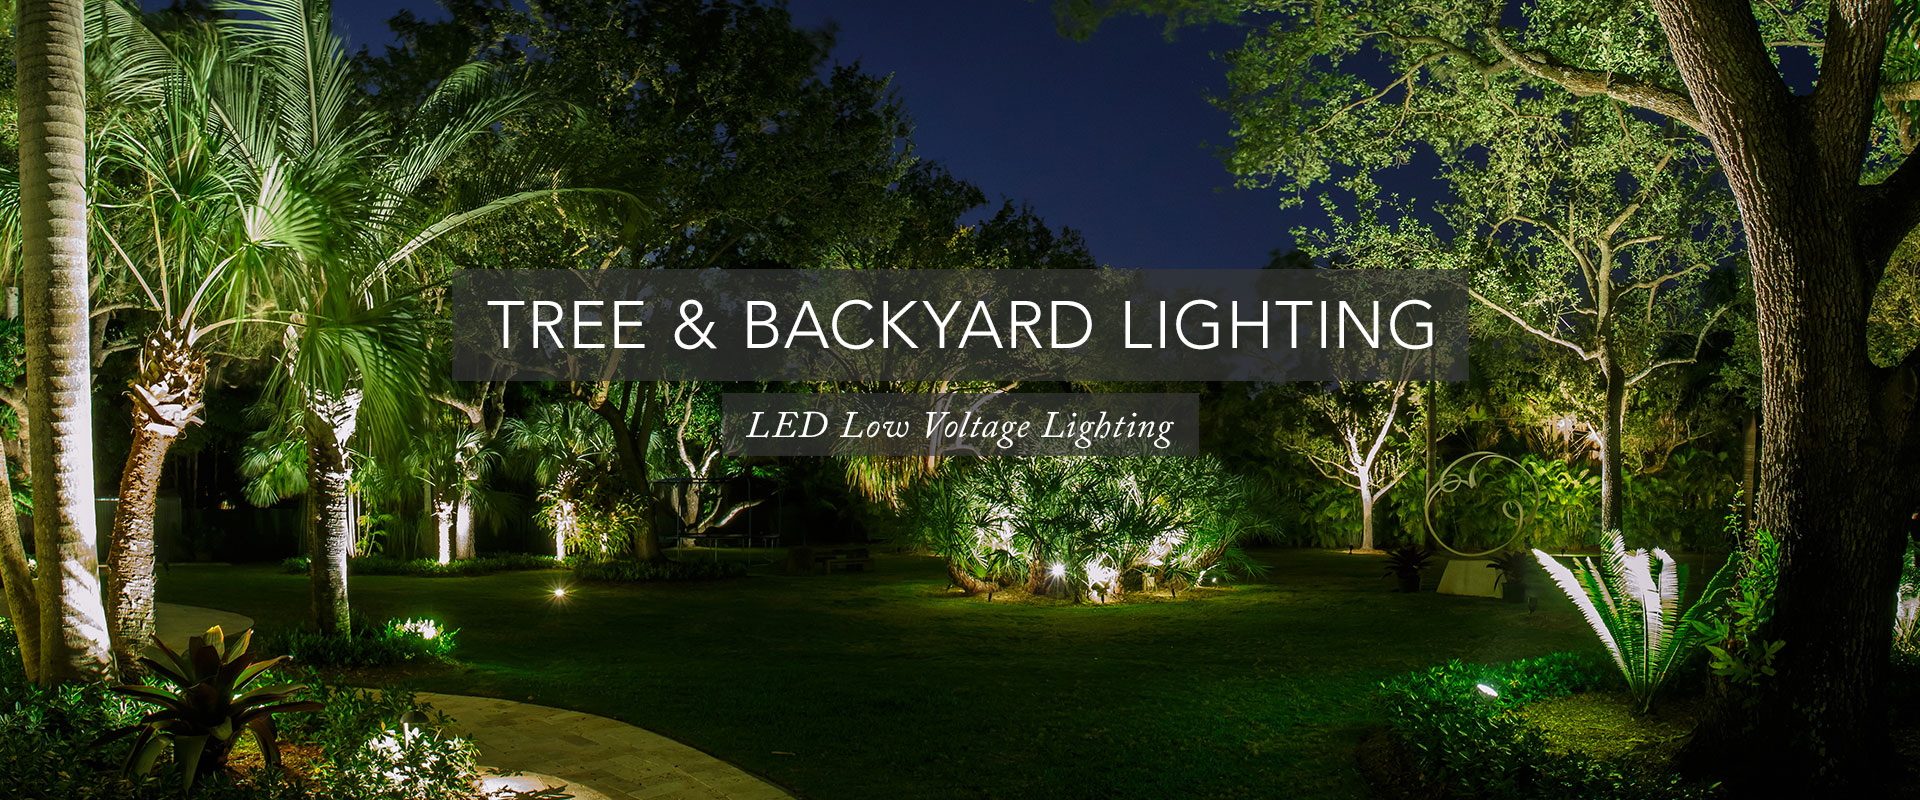 Miami Landscape Lighting Inc Led Installations Tel 305 479 5531 pertaining to 15 Some of the Coolest Tricks of How to Craft Backyard Landscape Lighting